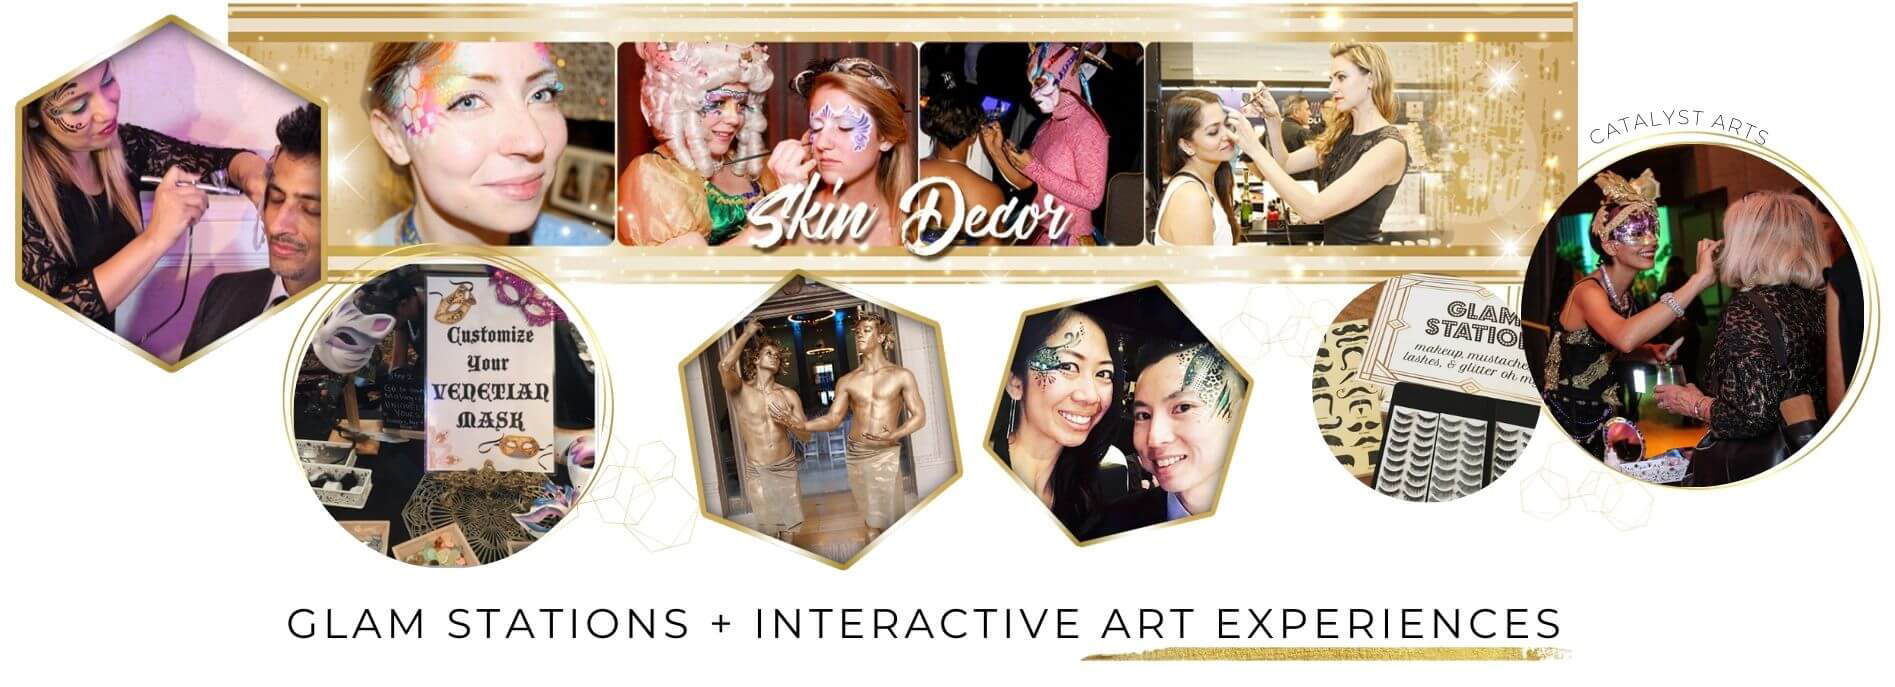 Skin Decor & Art Experiences by Catalyst Arts in California